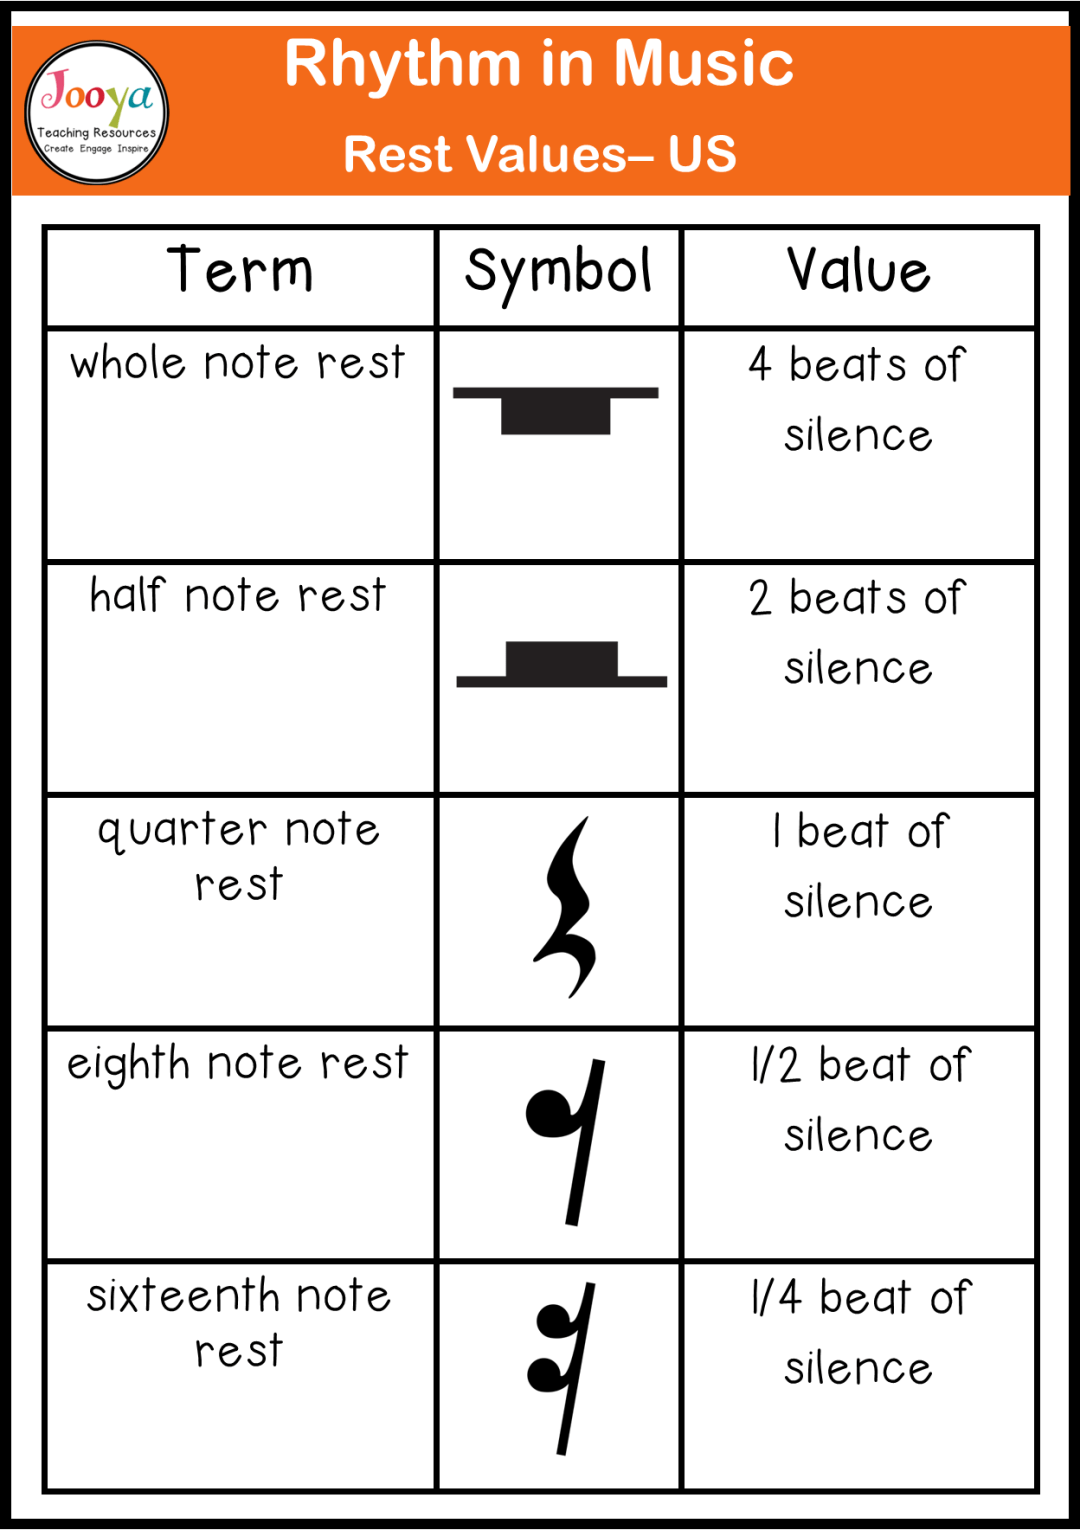 rhythm-in-music-rest-values-chart-US-rest-names